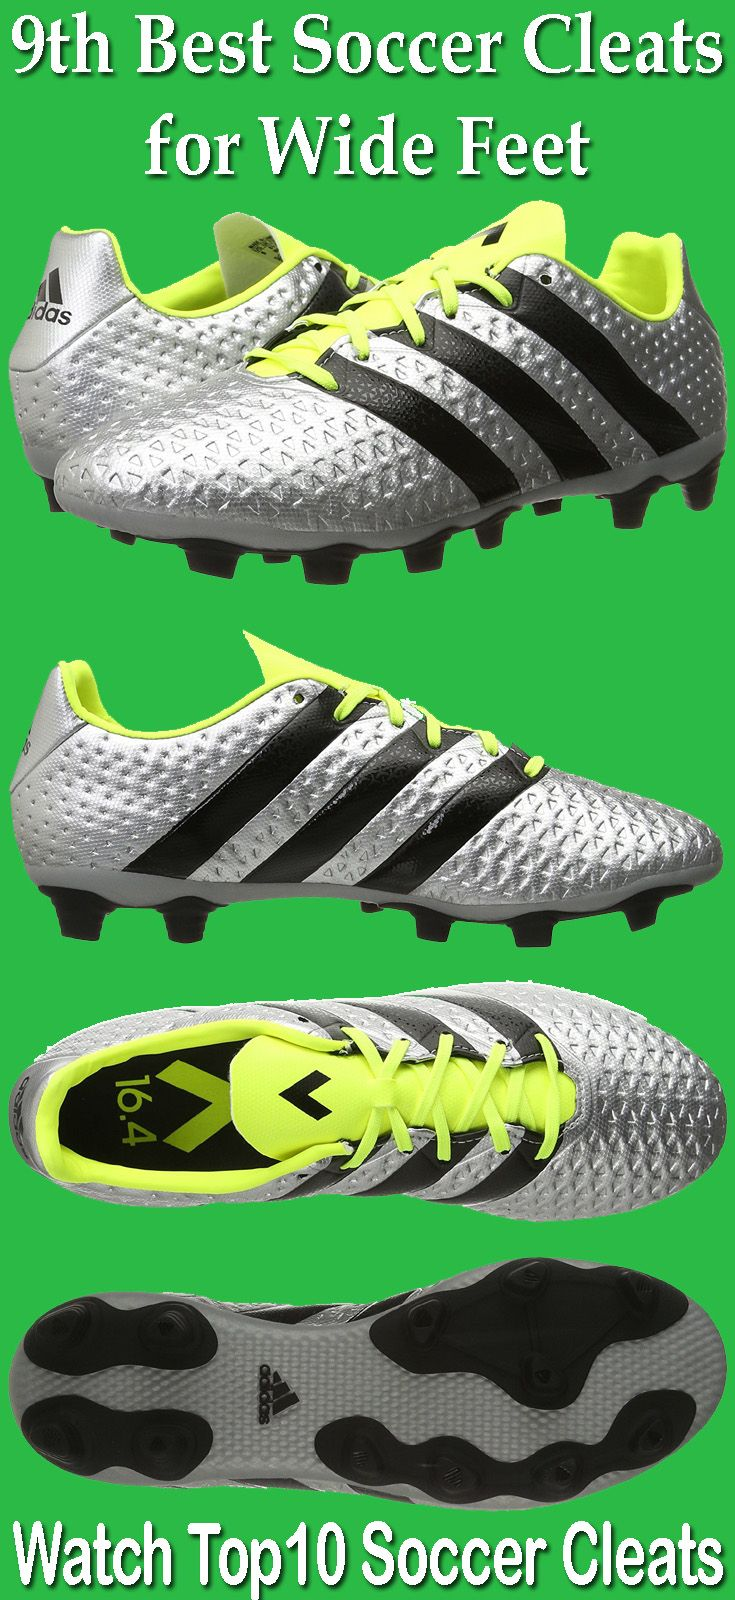 adidas Performance Men s Ace 16.4 FXG is one of the best soccer cleats for  Wide Feet. 0e9abedb9c1b